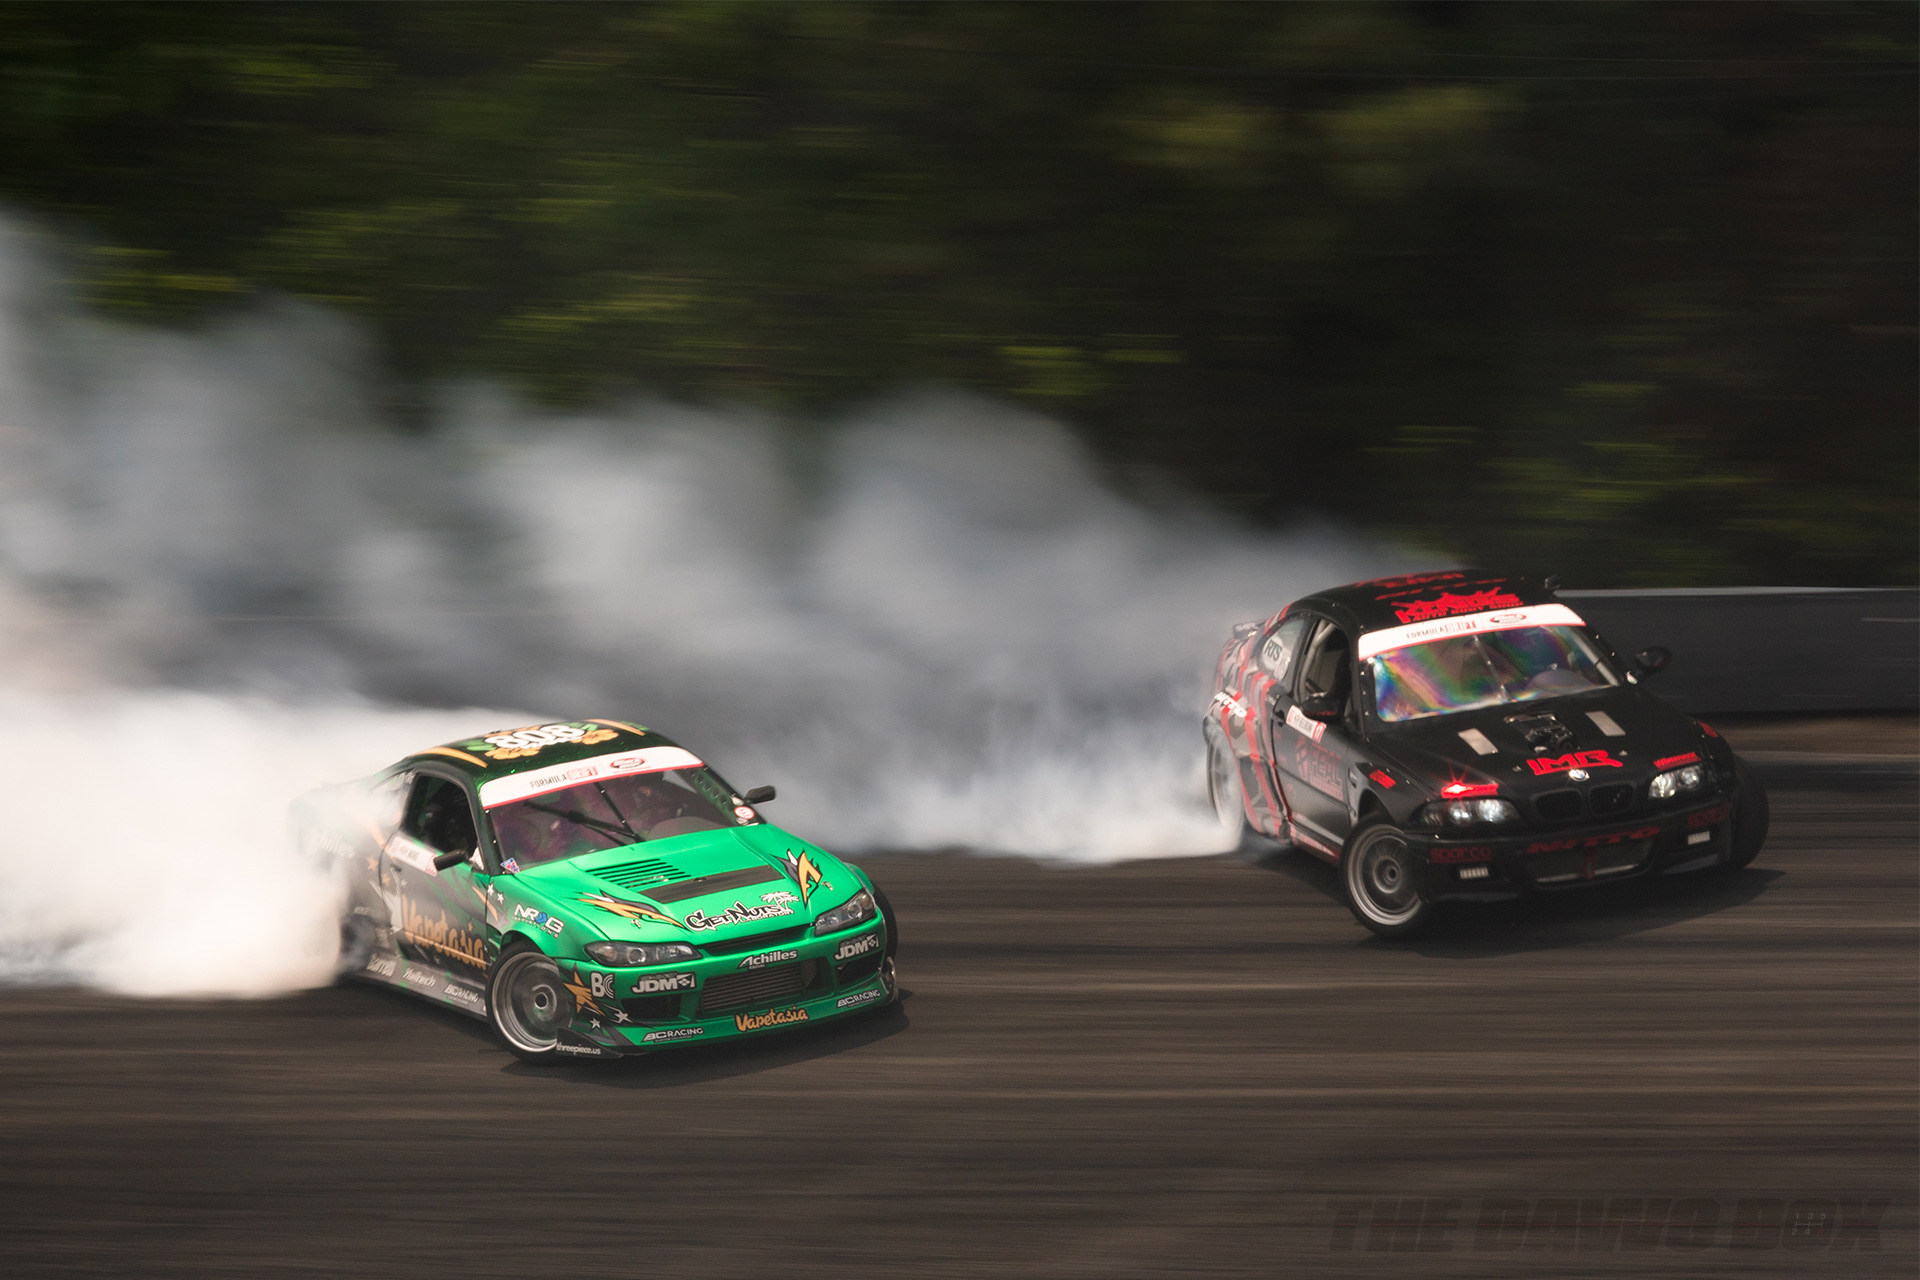 Nissan 240sx s15 and BMW drifting